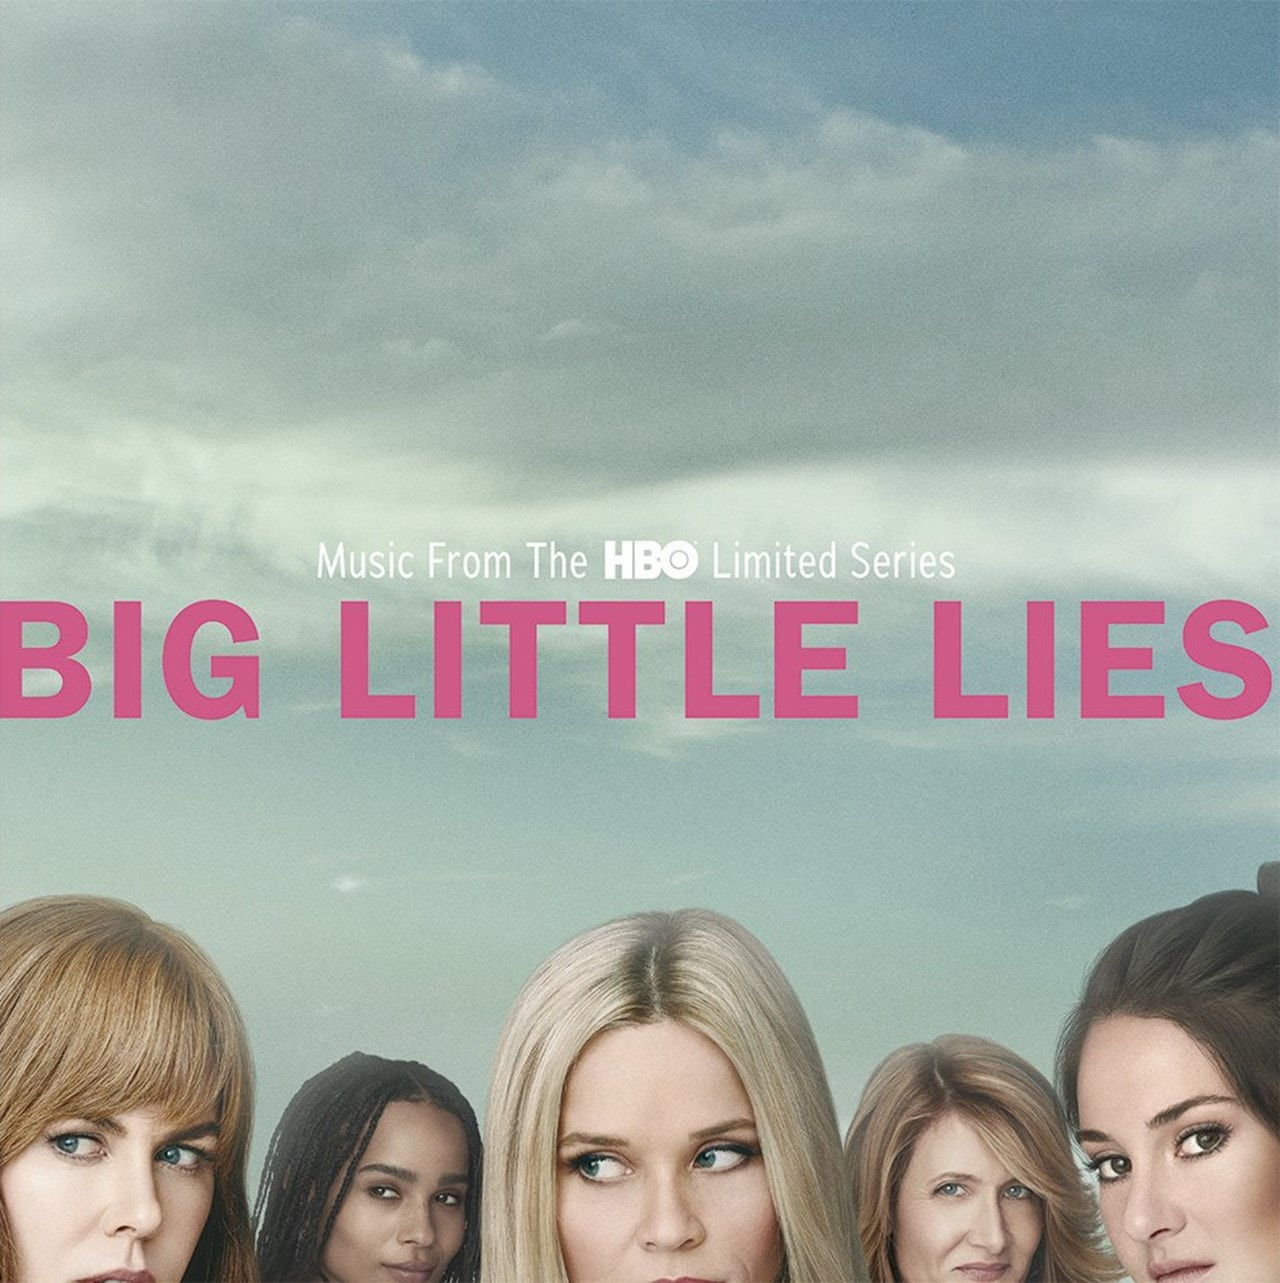 Big Little Lies: Music from the HBO Limited Series - 1